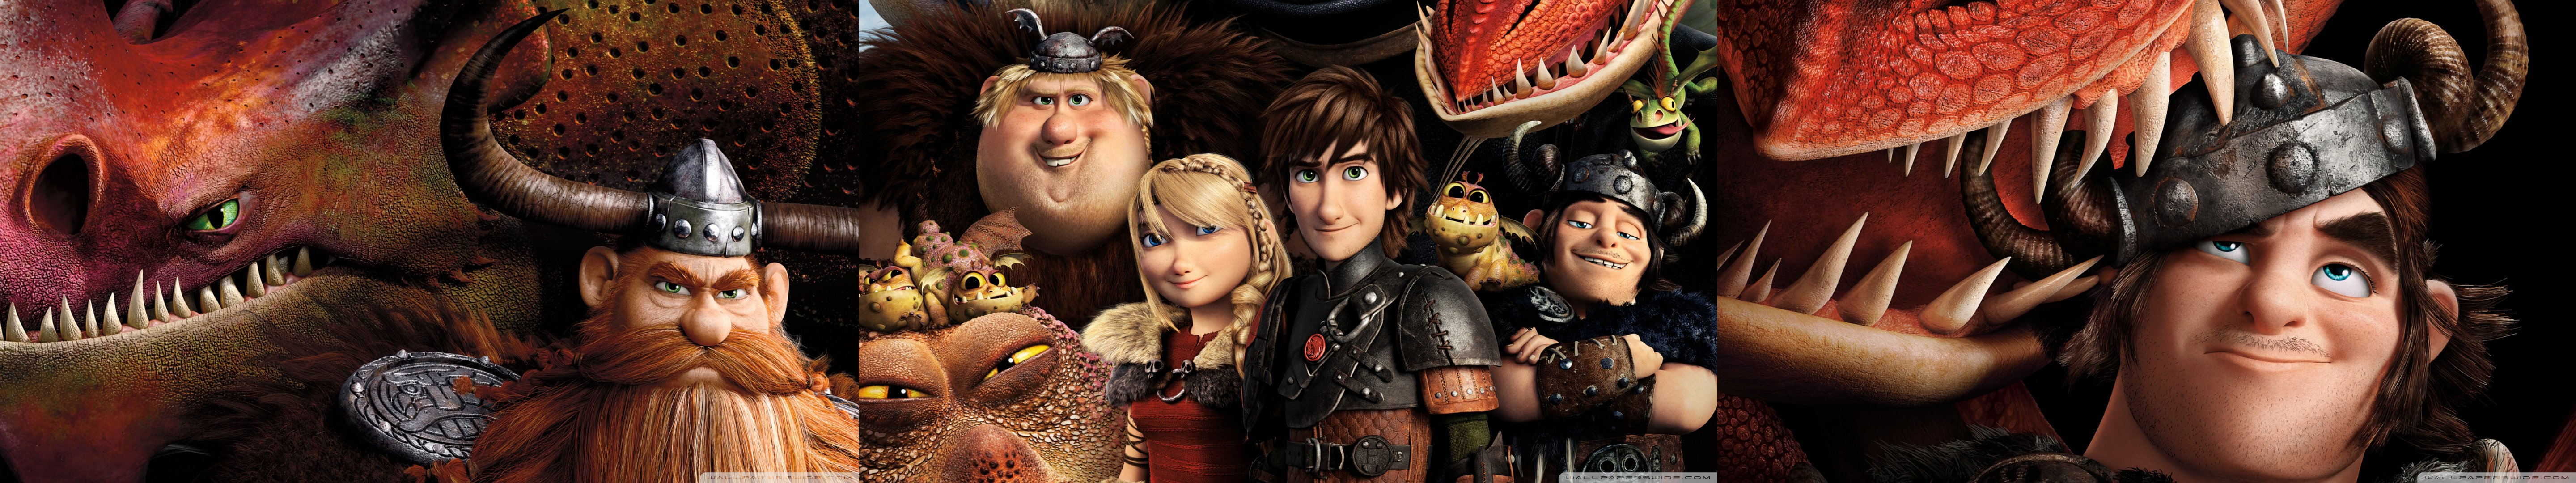 how to train your dragon mult porn